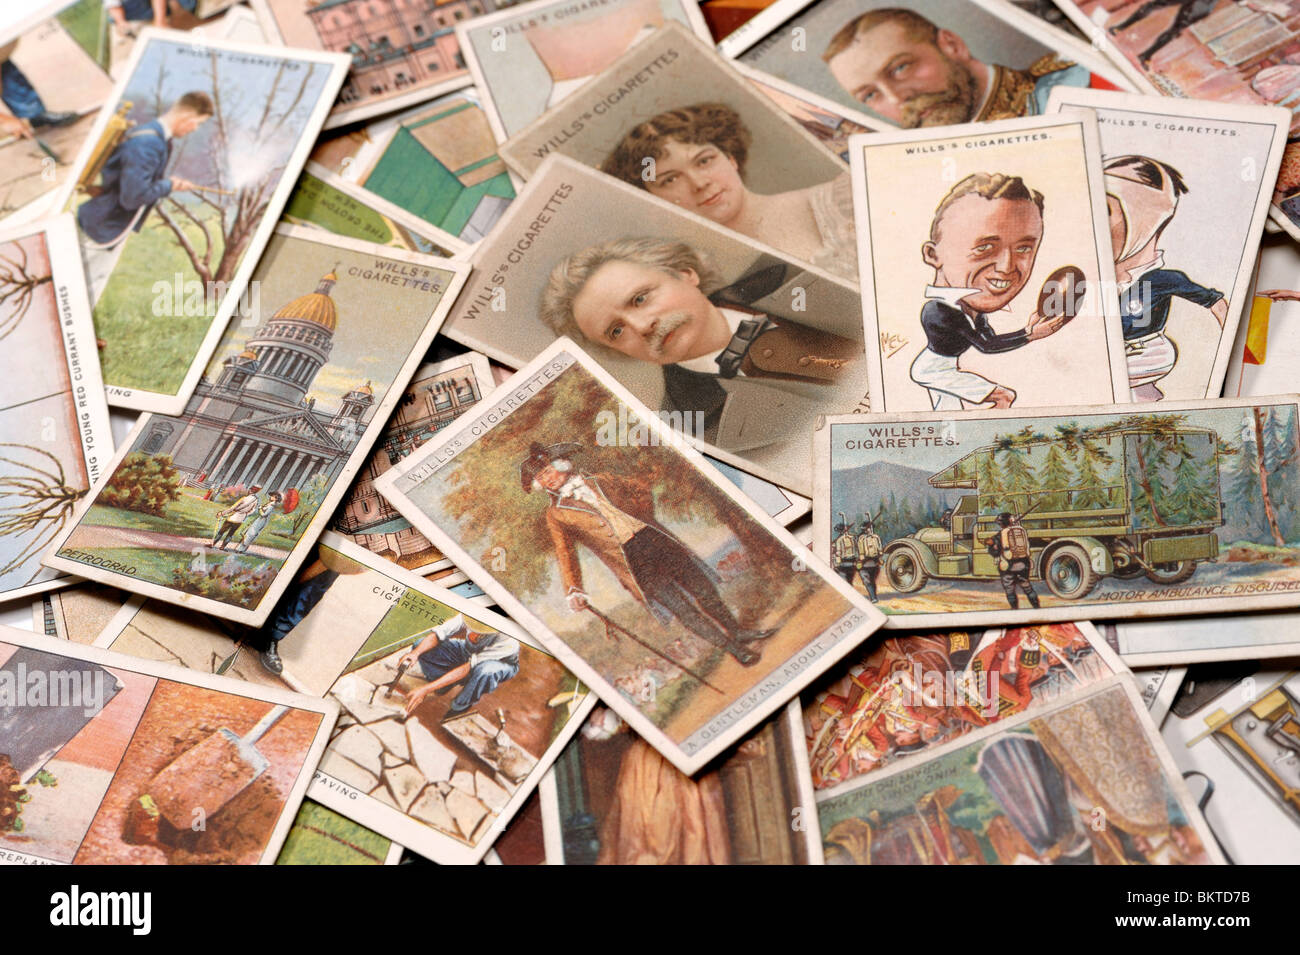 Cigarette Cards - Stock Image